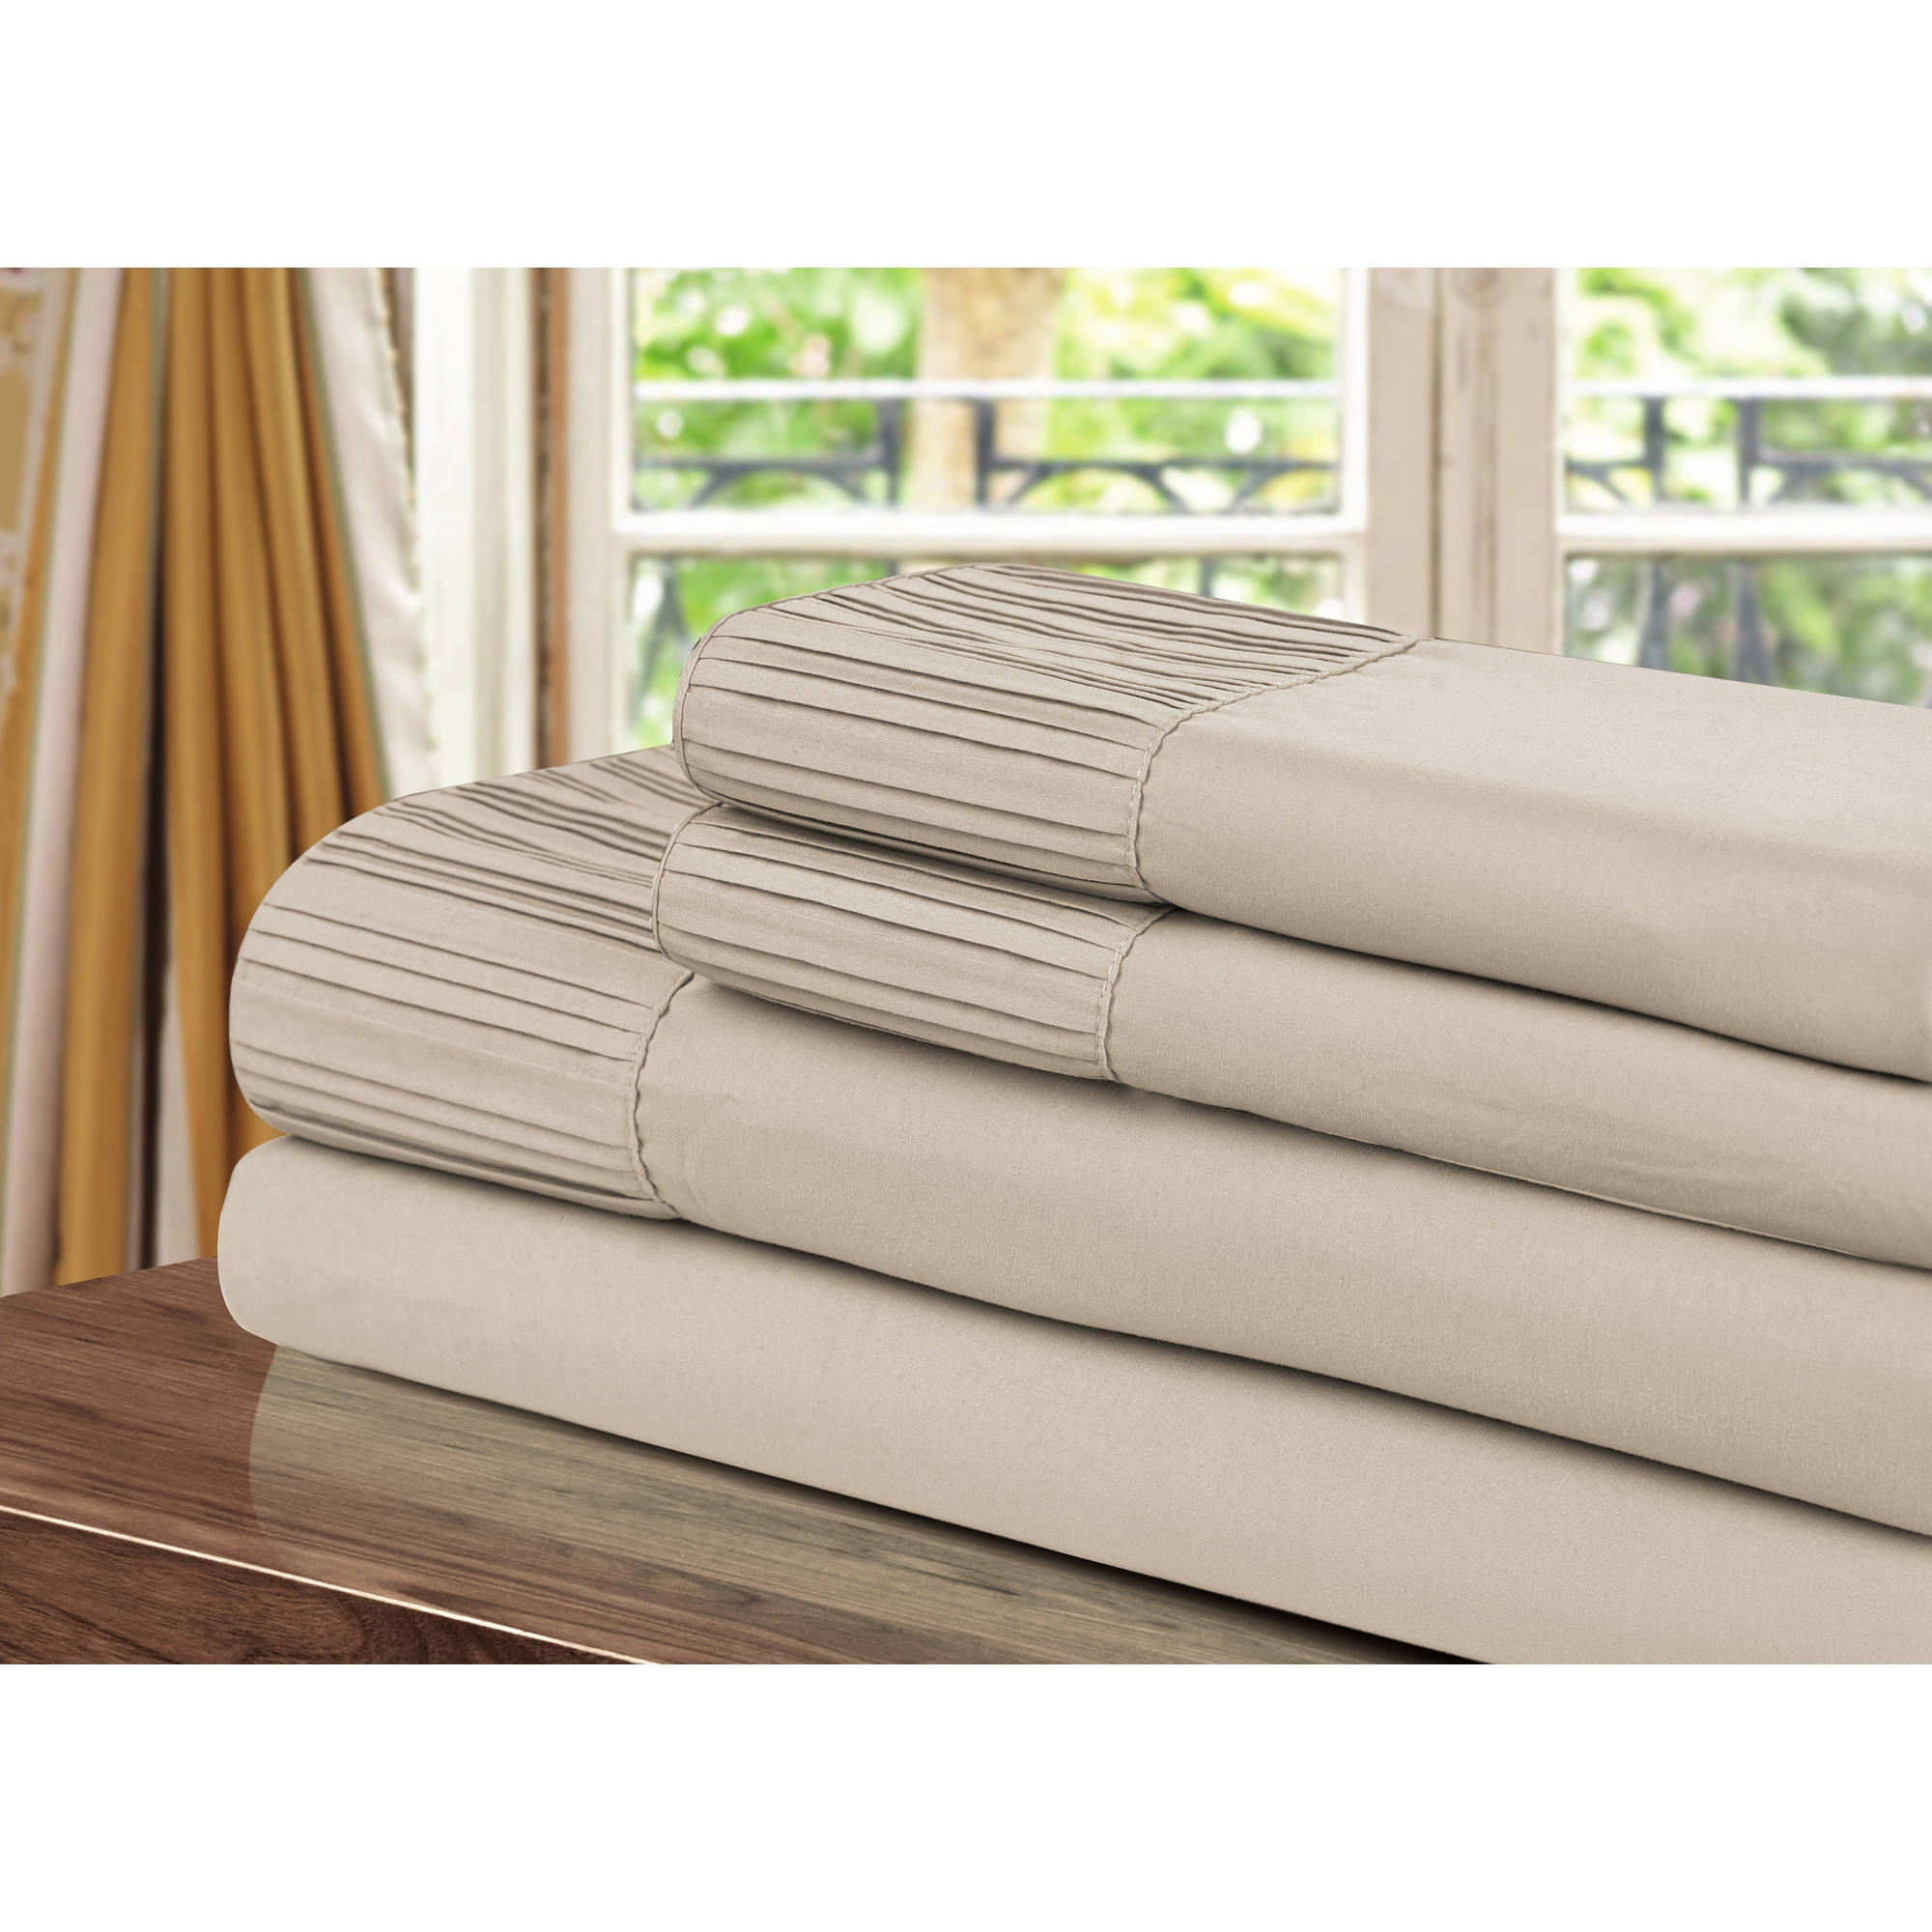 Chic Home Swifty Pleated Microfiber Sheet